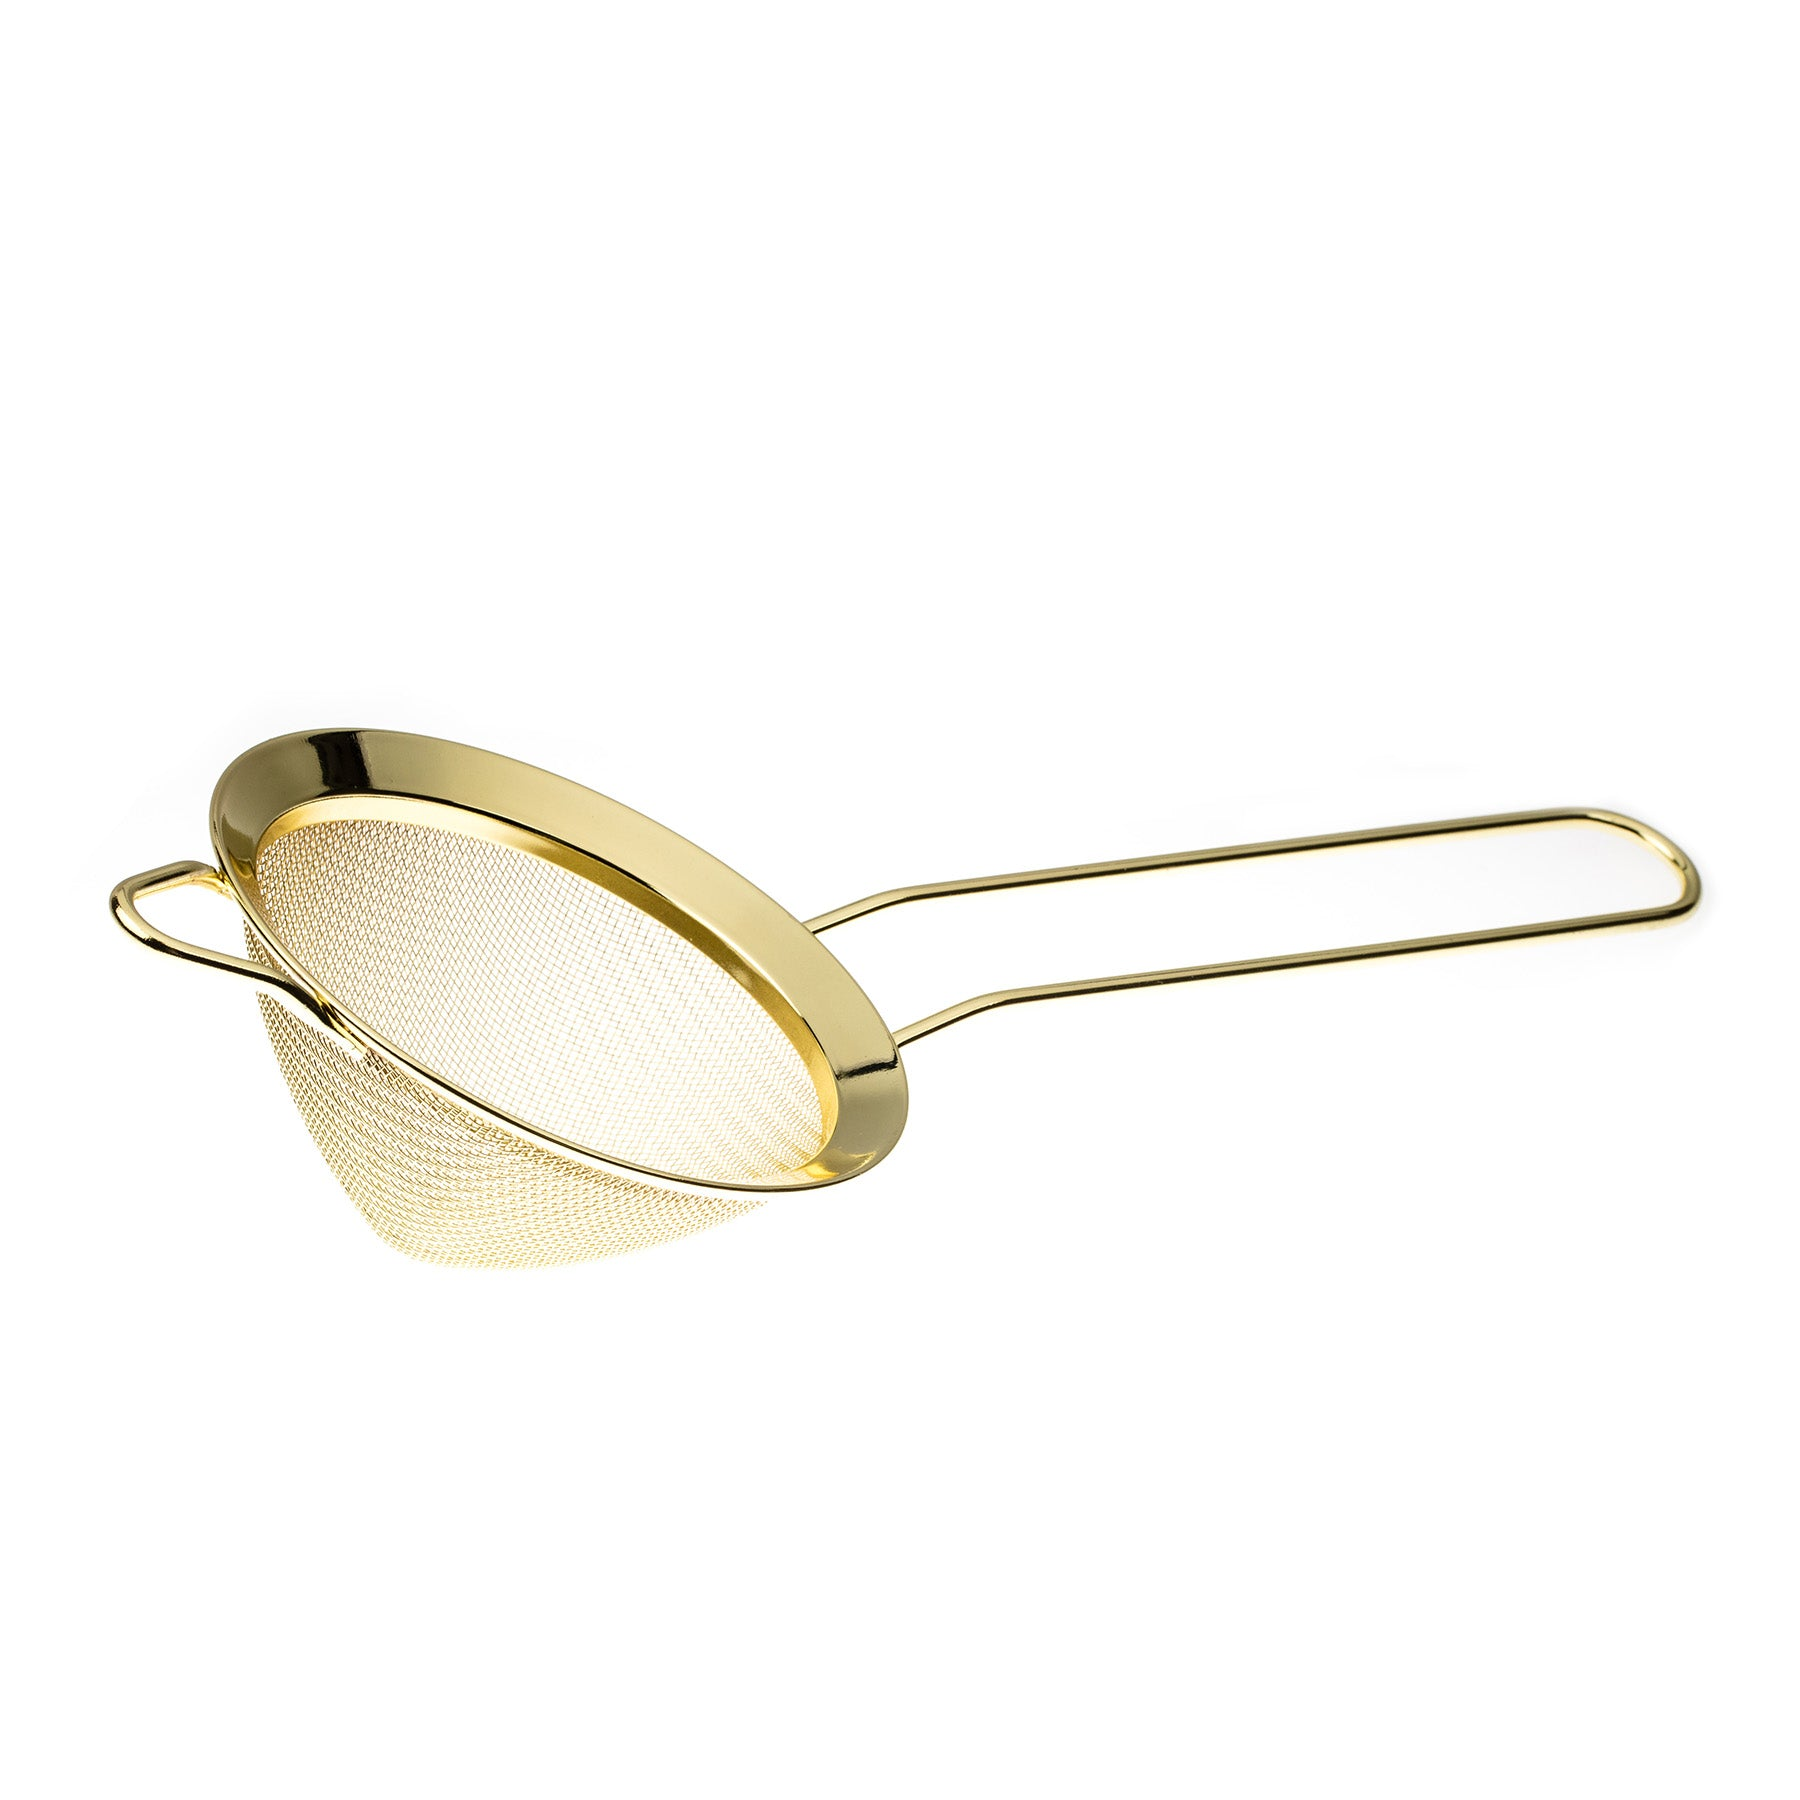 Gold Conical Mesh Strainer